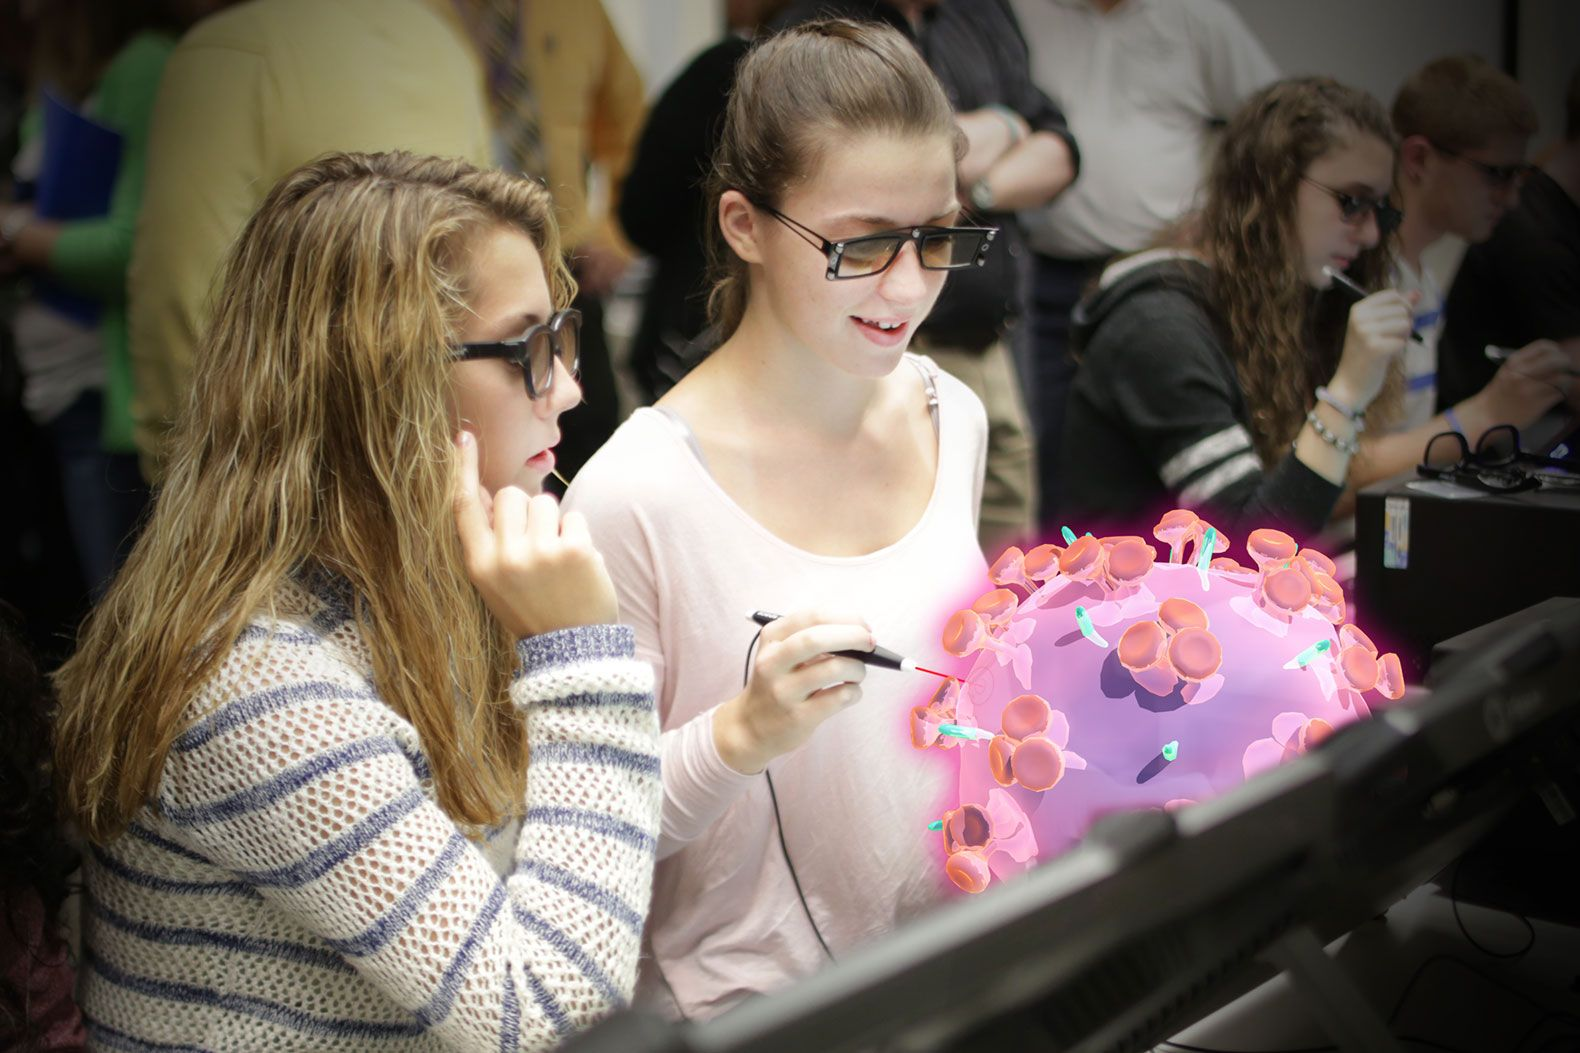 Students explore a virus using zSpace computers and glasses that allow objects to pop out of a flat screen in 3D.